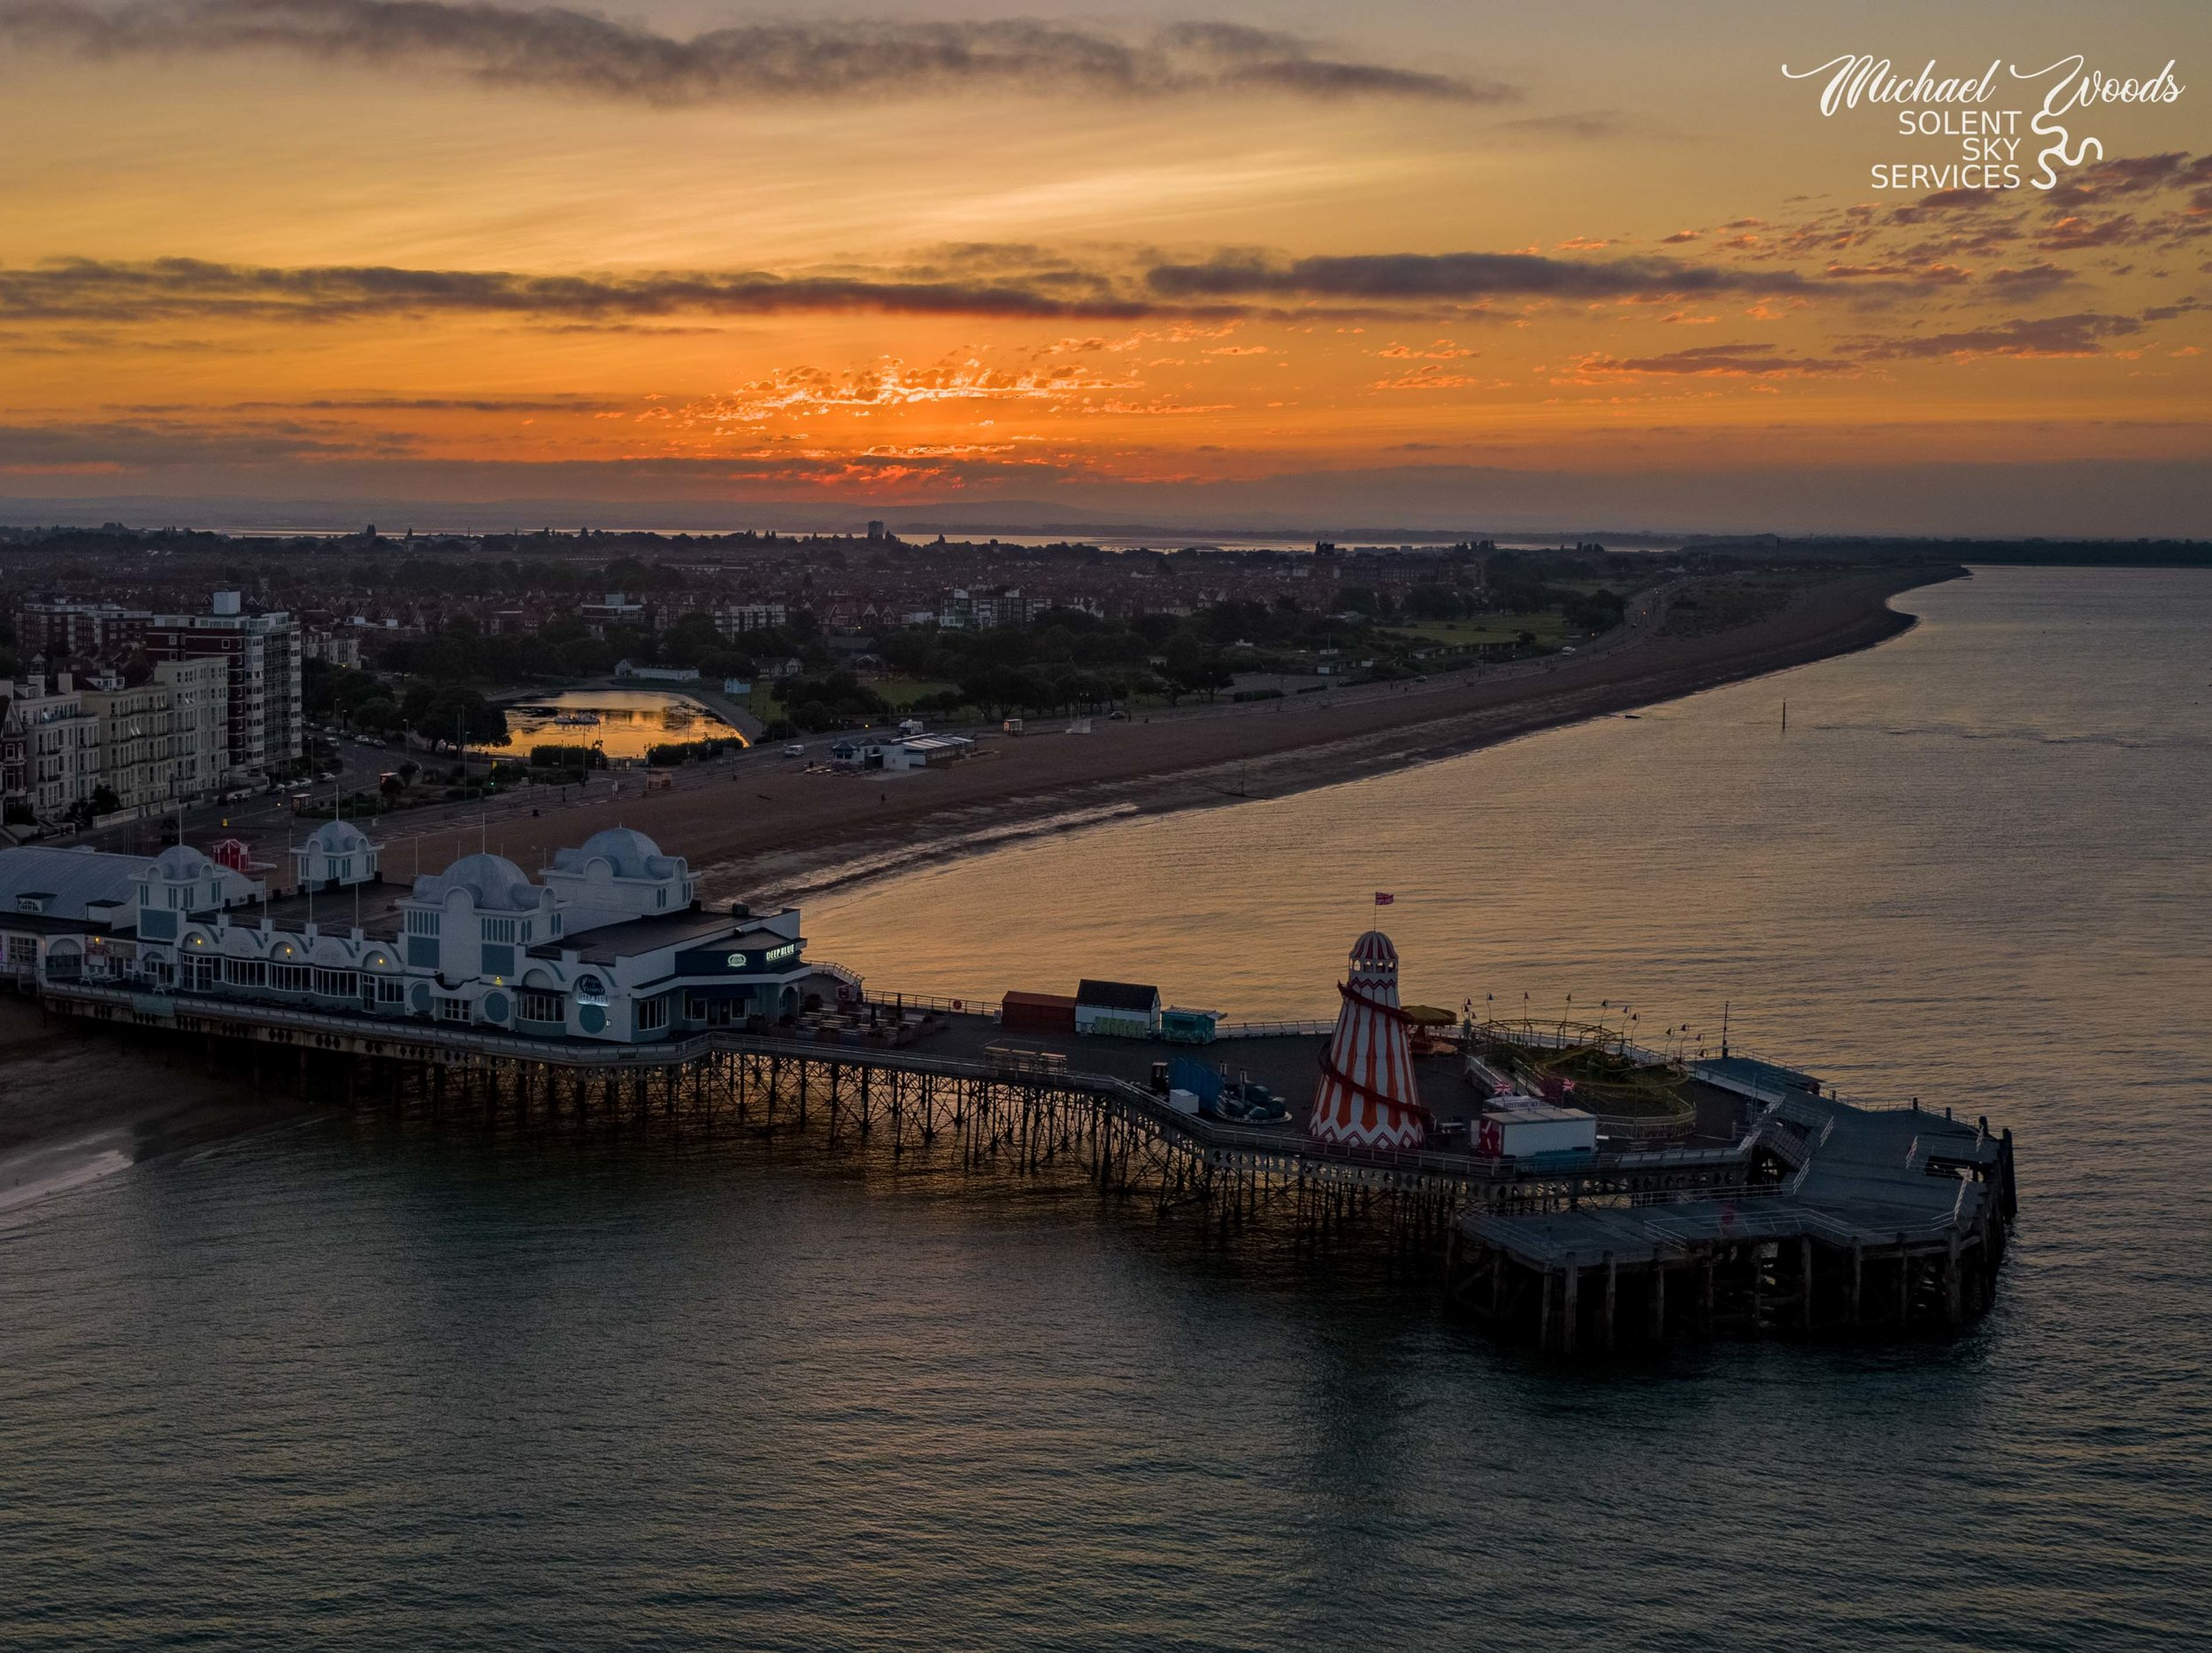 South Parade Pier 30.06.19 - Solent Sky Services - 85.MEDIA-85-8.JPG